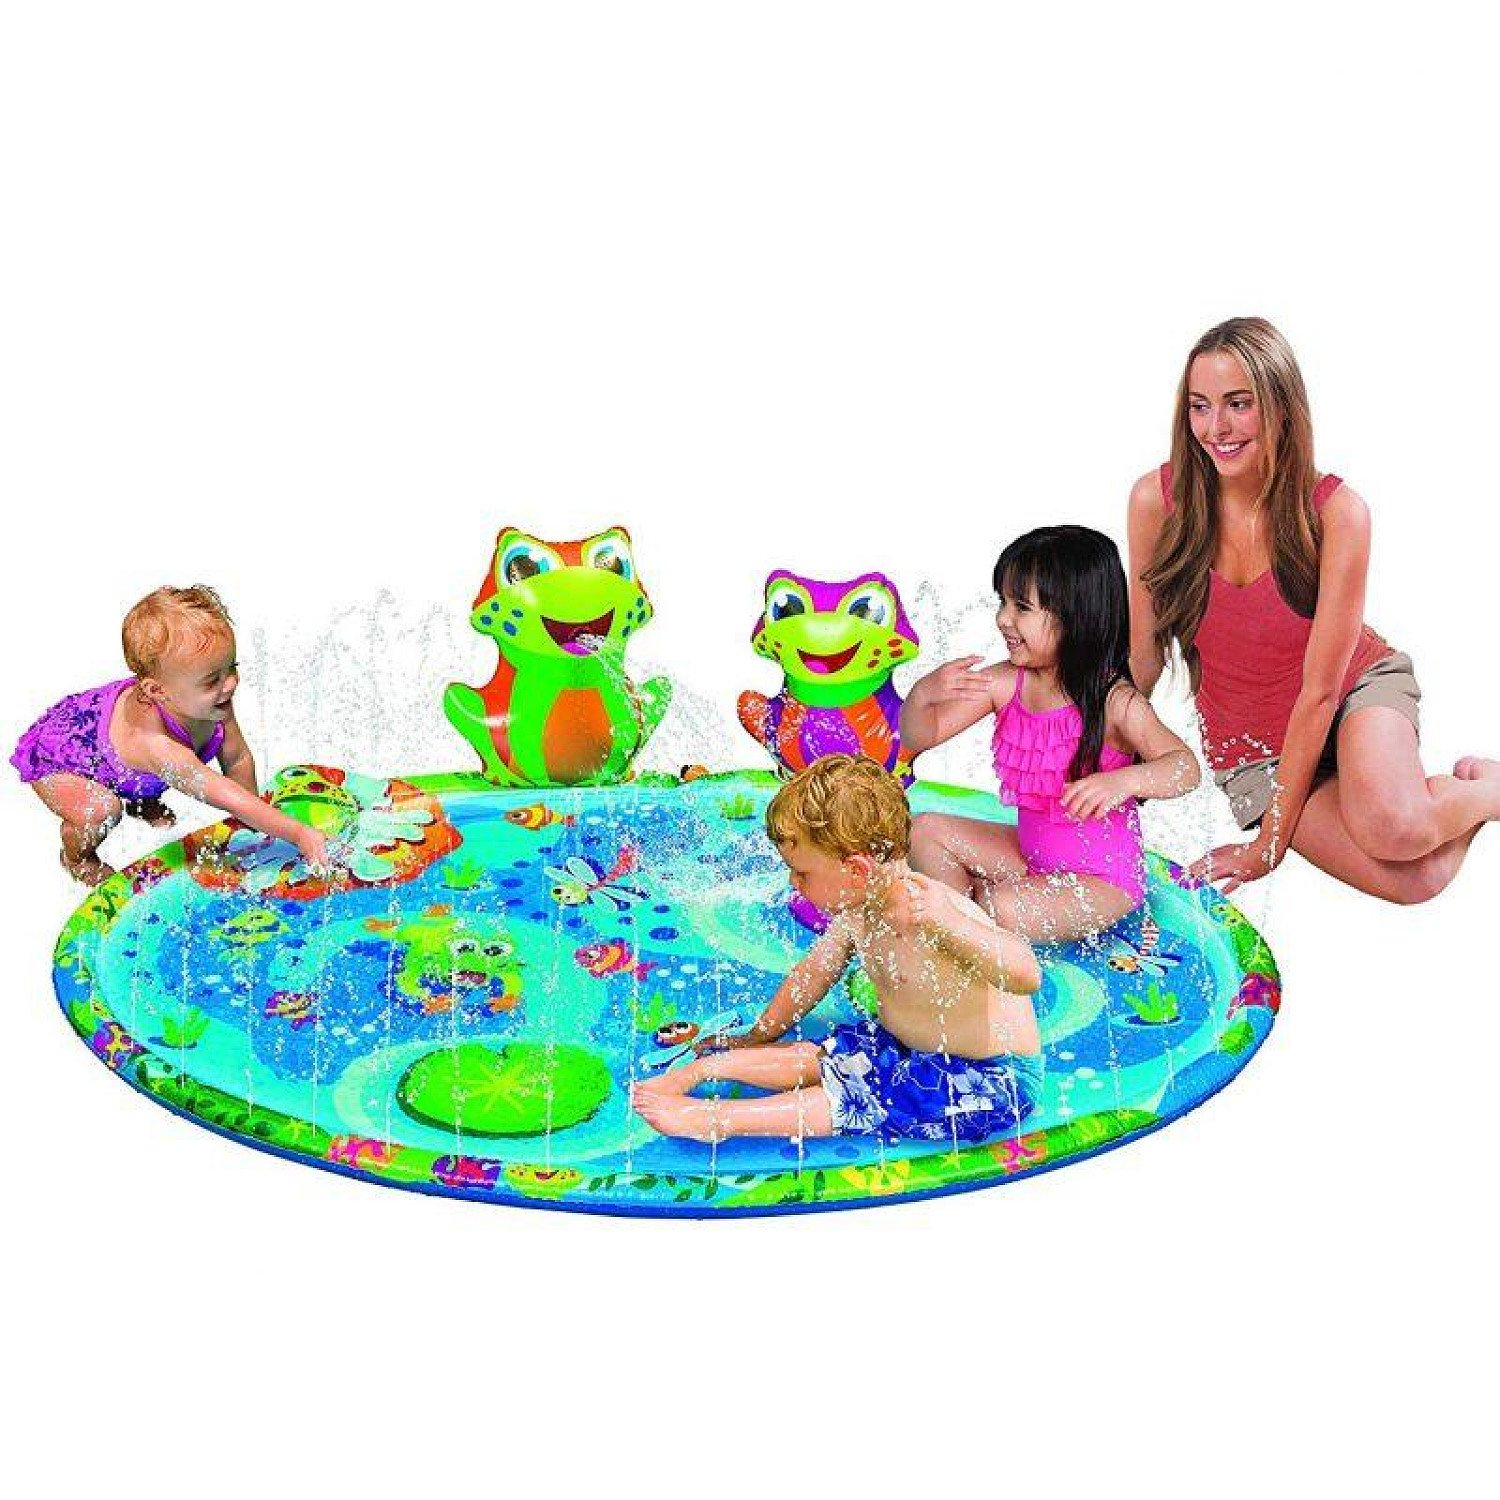 FROGGY POND KIDS SPLASH MAT